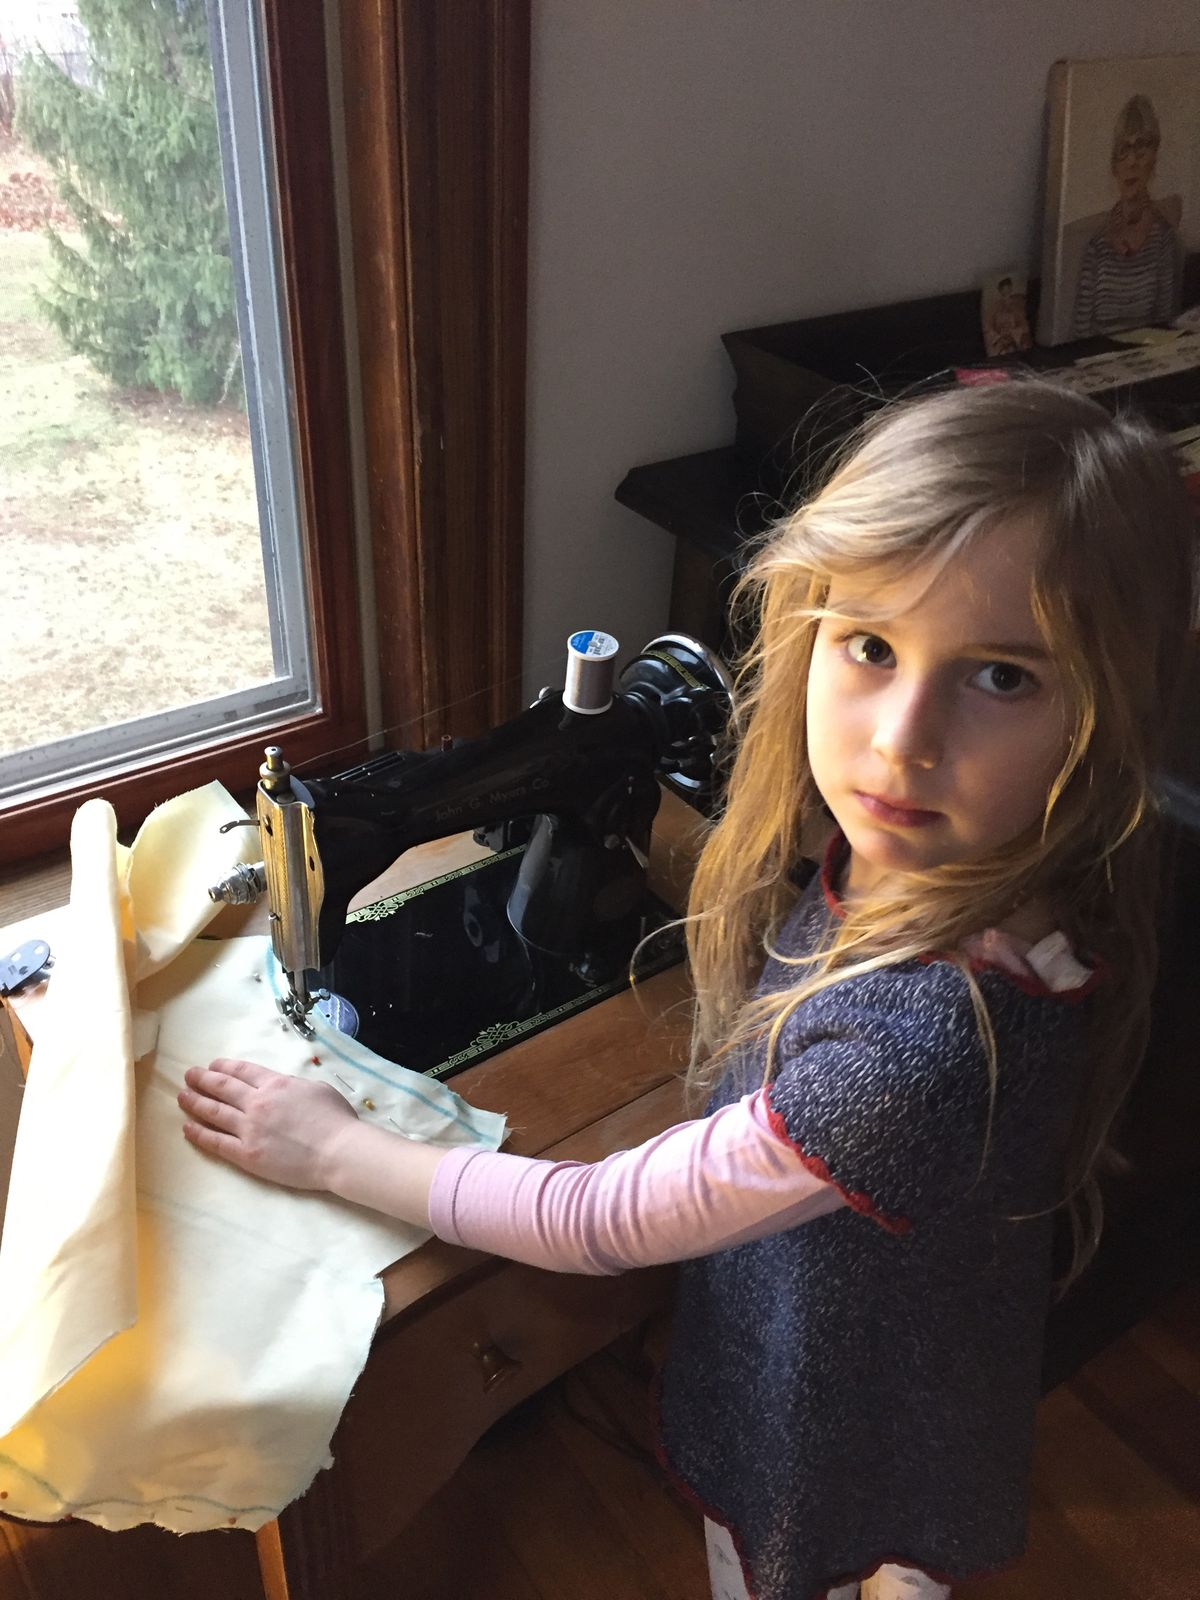 Early in the pandemic, Star Atkeson's daughter, Isabel, worked on a sewing project.